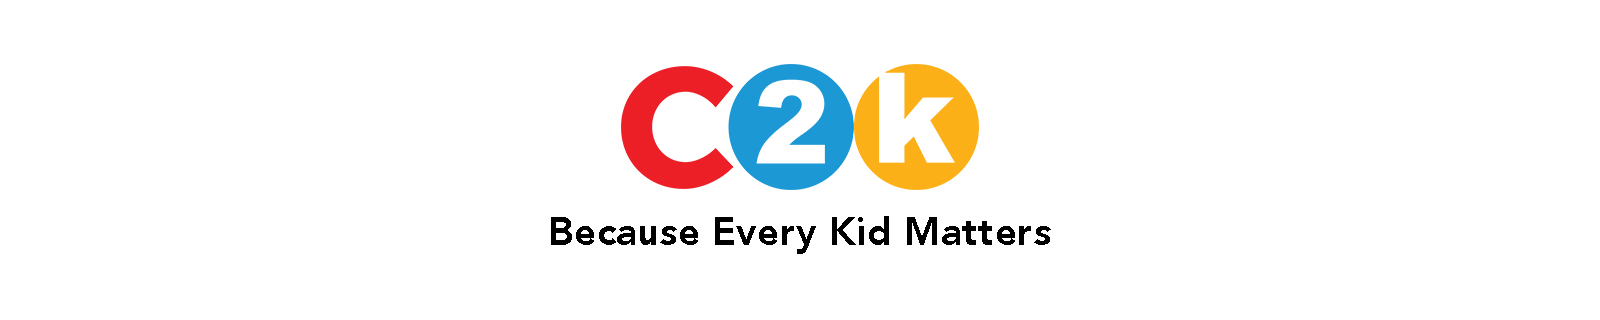 C2k Ministries Store